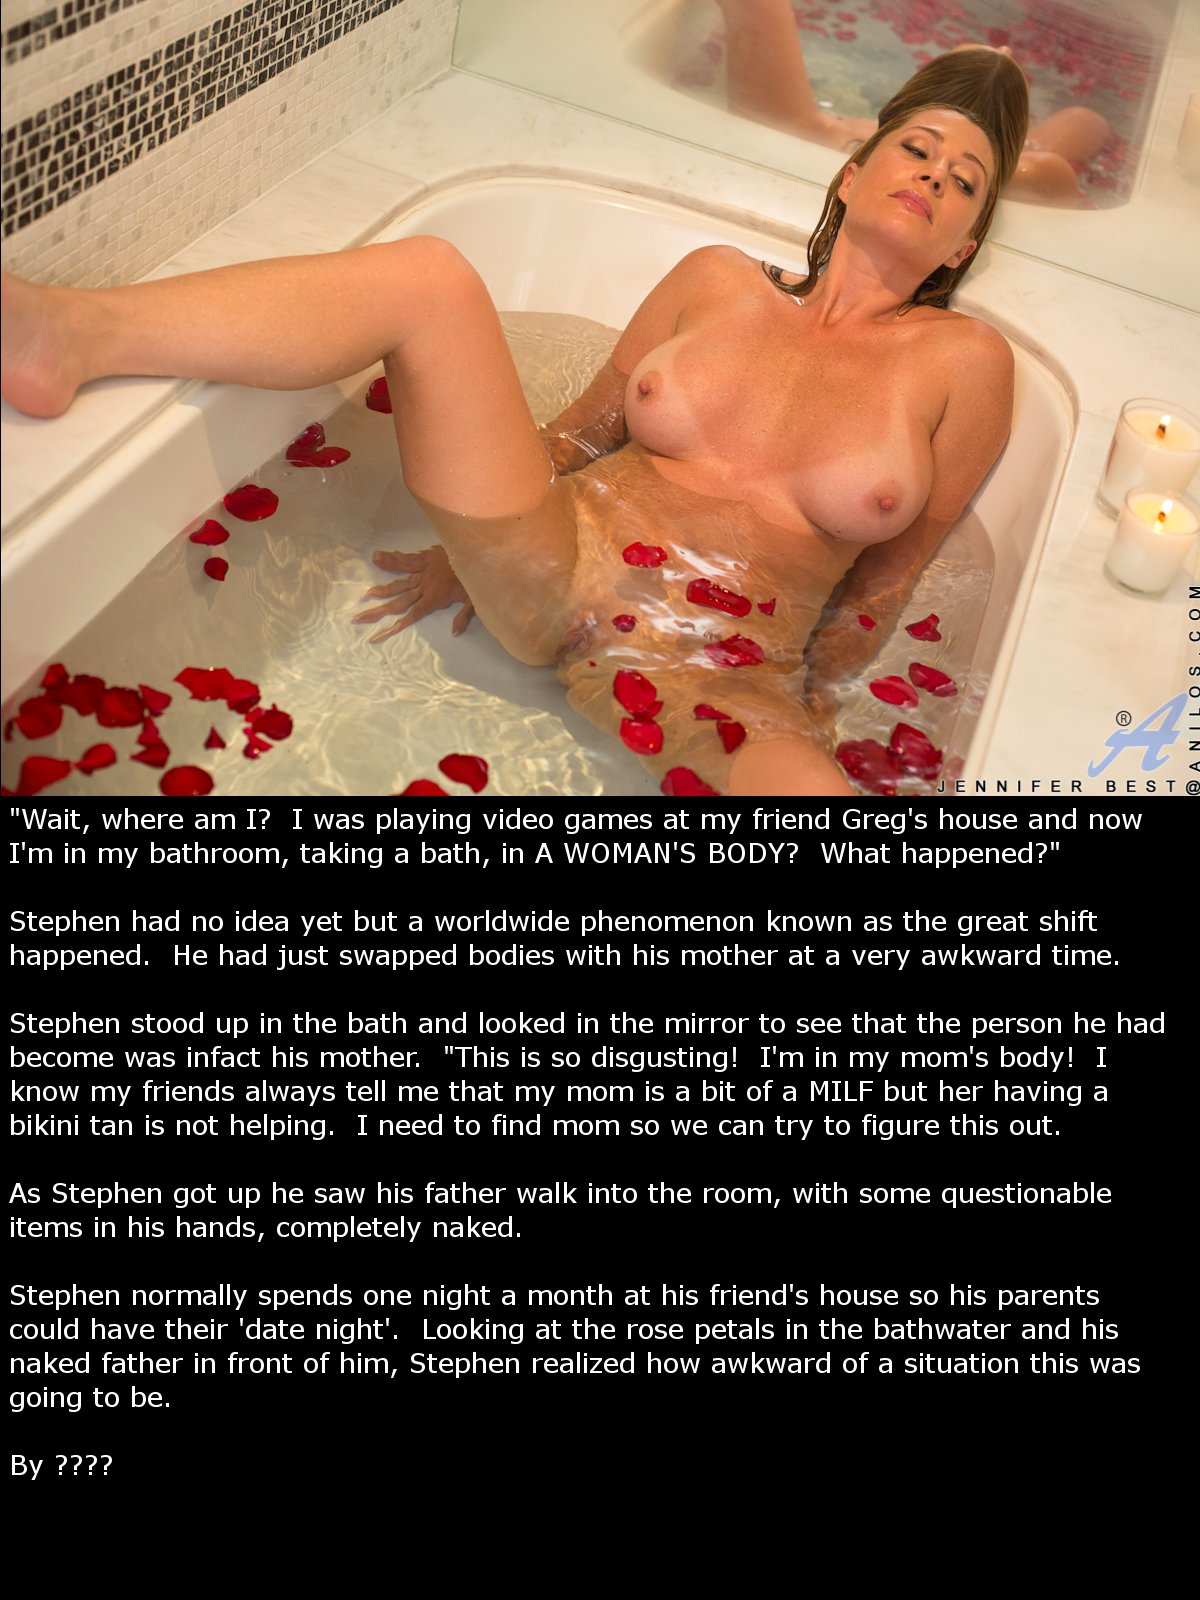 Mom wants a taboo relationship with not her son 8